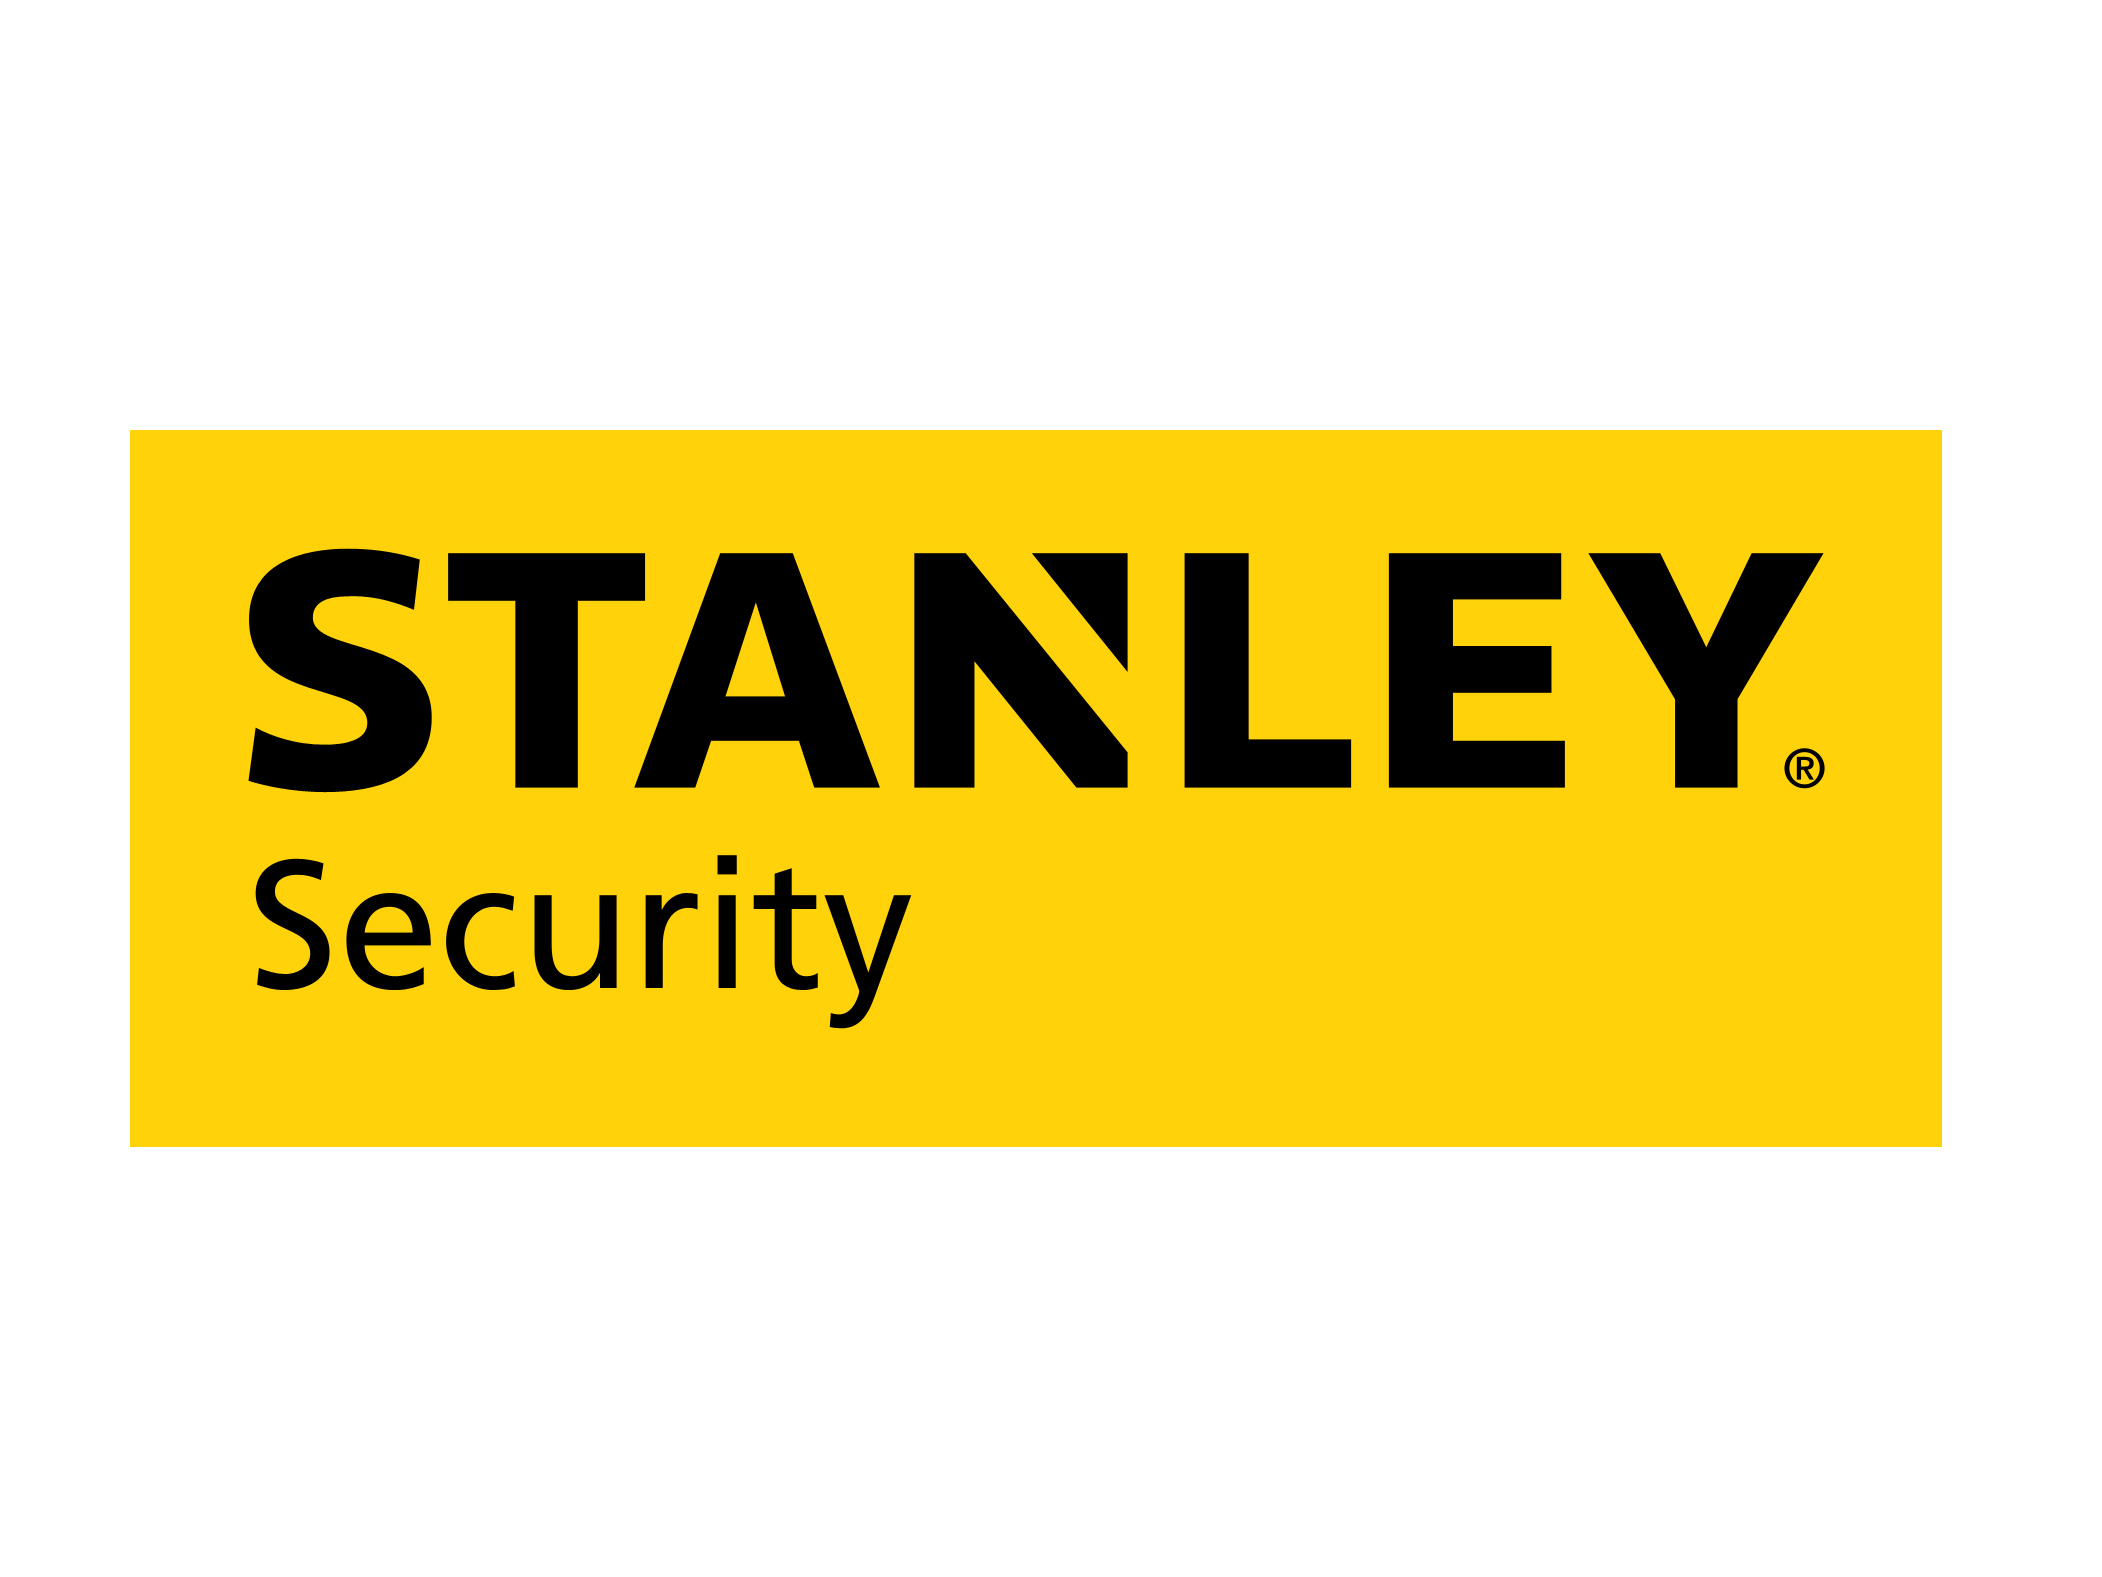 Stanley Security Logo 2014.jpg